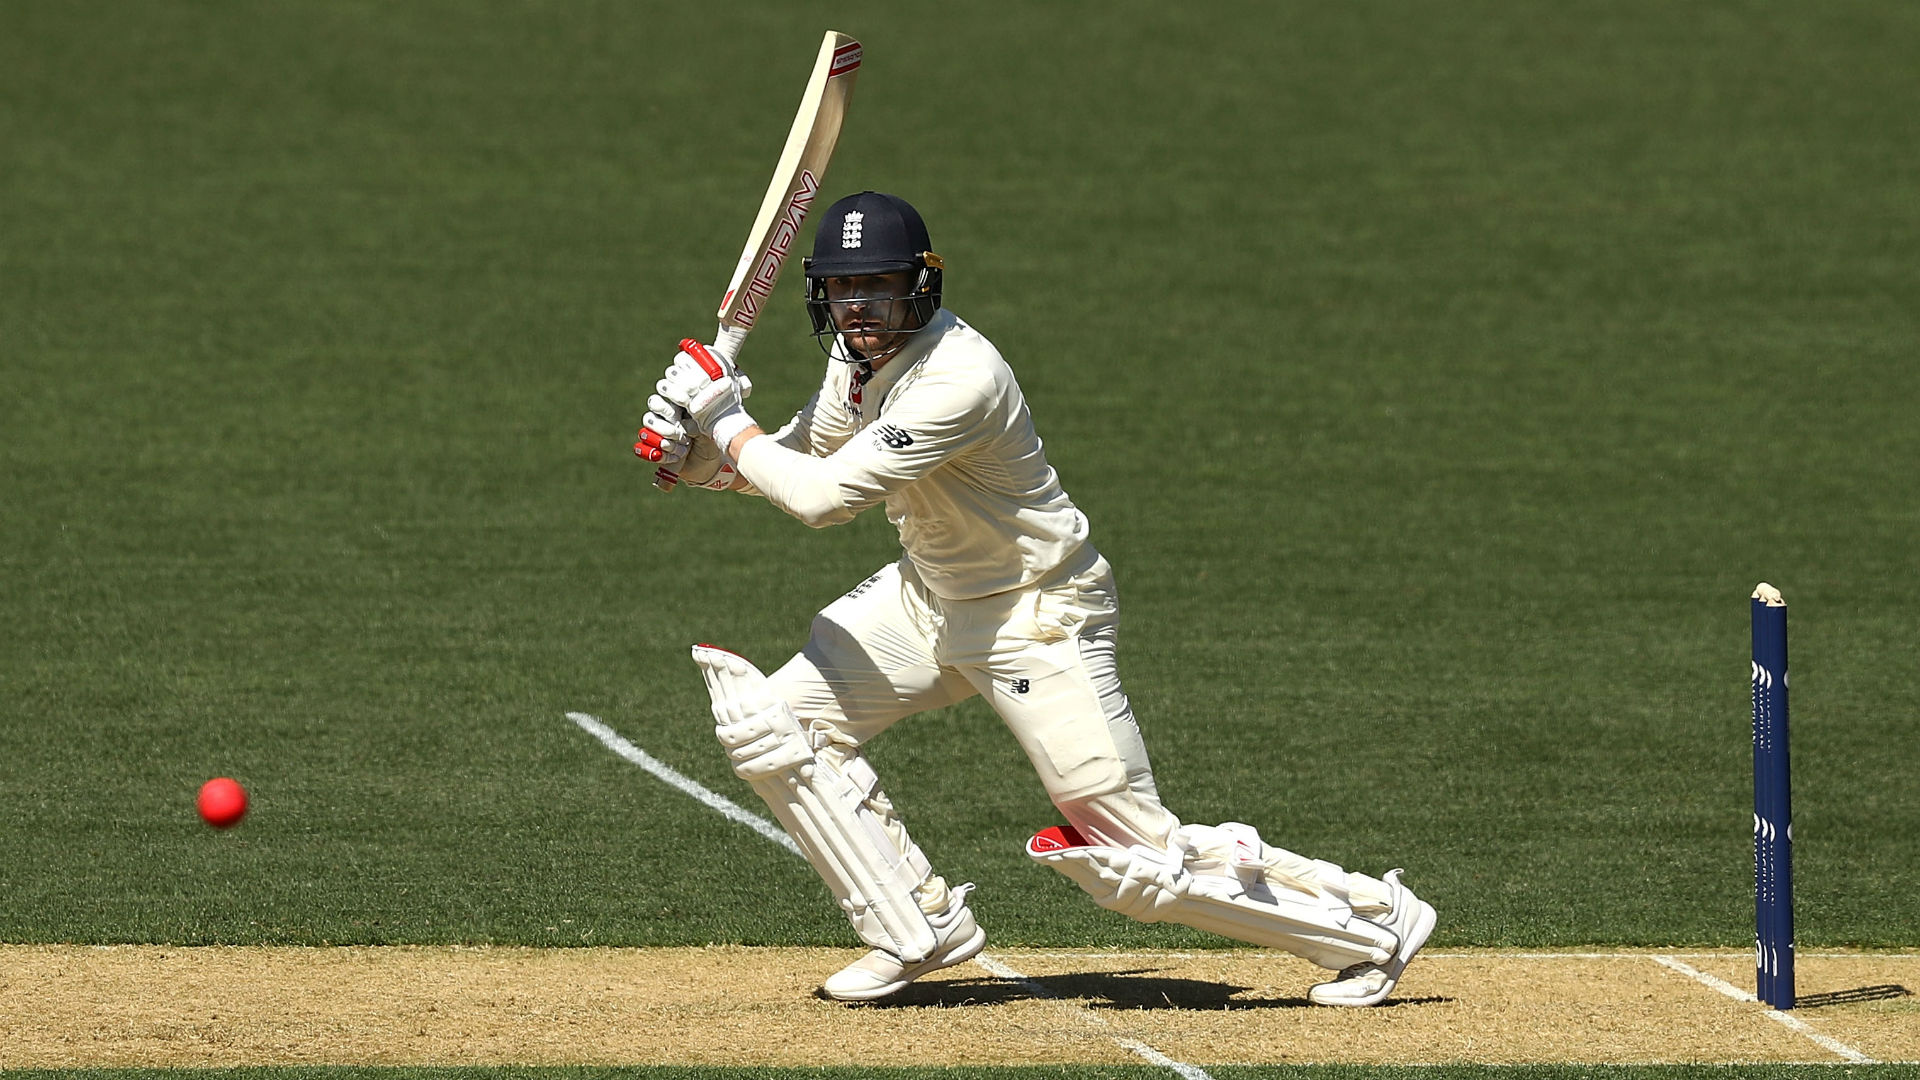 'Sloppy' England must learn lessons before Ashes opener